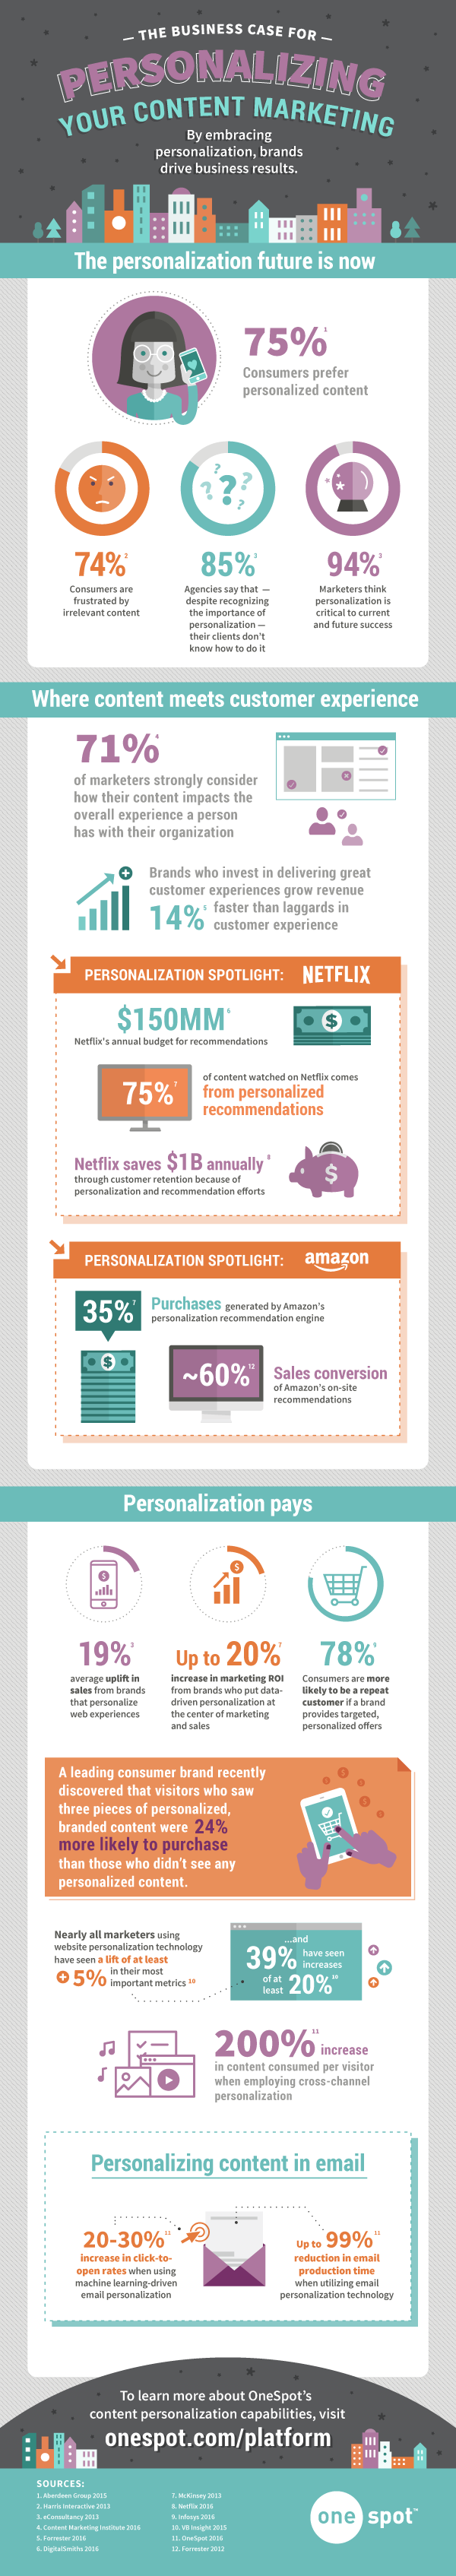 Personalization-Infographic